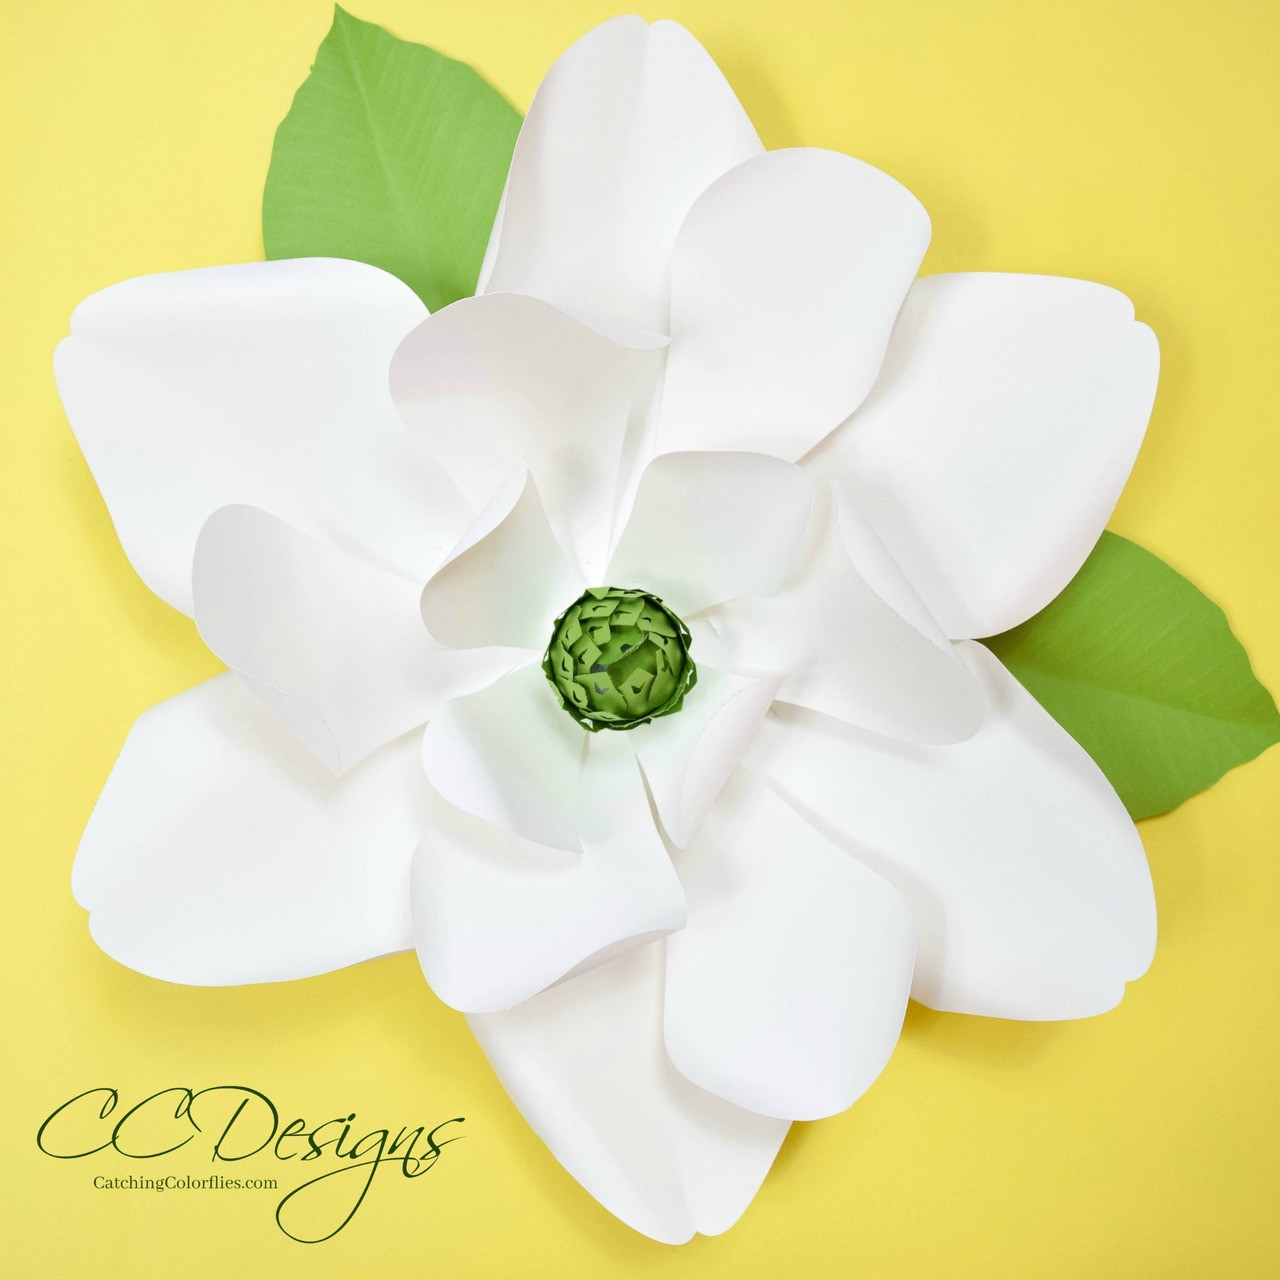 Giant Paper Magnolia Templates Catching Colorflies